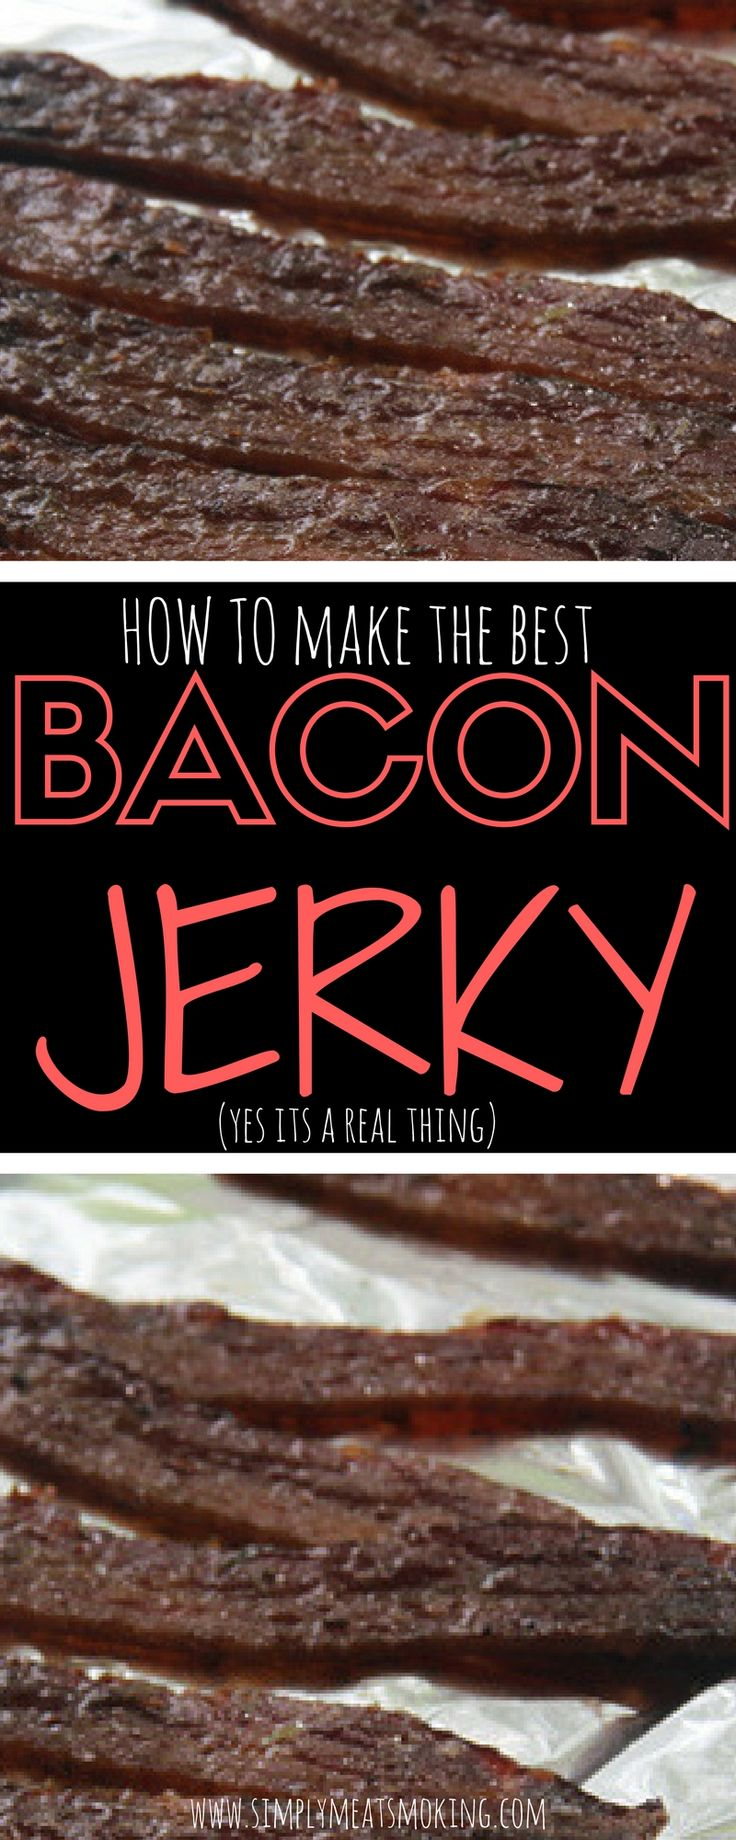 Bacon jerky is your next best friend. Its super easy and delicious!   BBQ Recipes   Barbecue Recipes   Smoker Recipes   Grill Recipes   Best Grill Recipes   Best Smoker Recipes   Best BBQ Recipes   Best Barbecue Recipes   Best BBQ Food   BBQ Inspiration